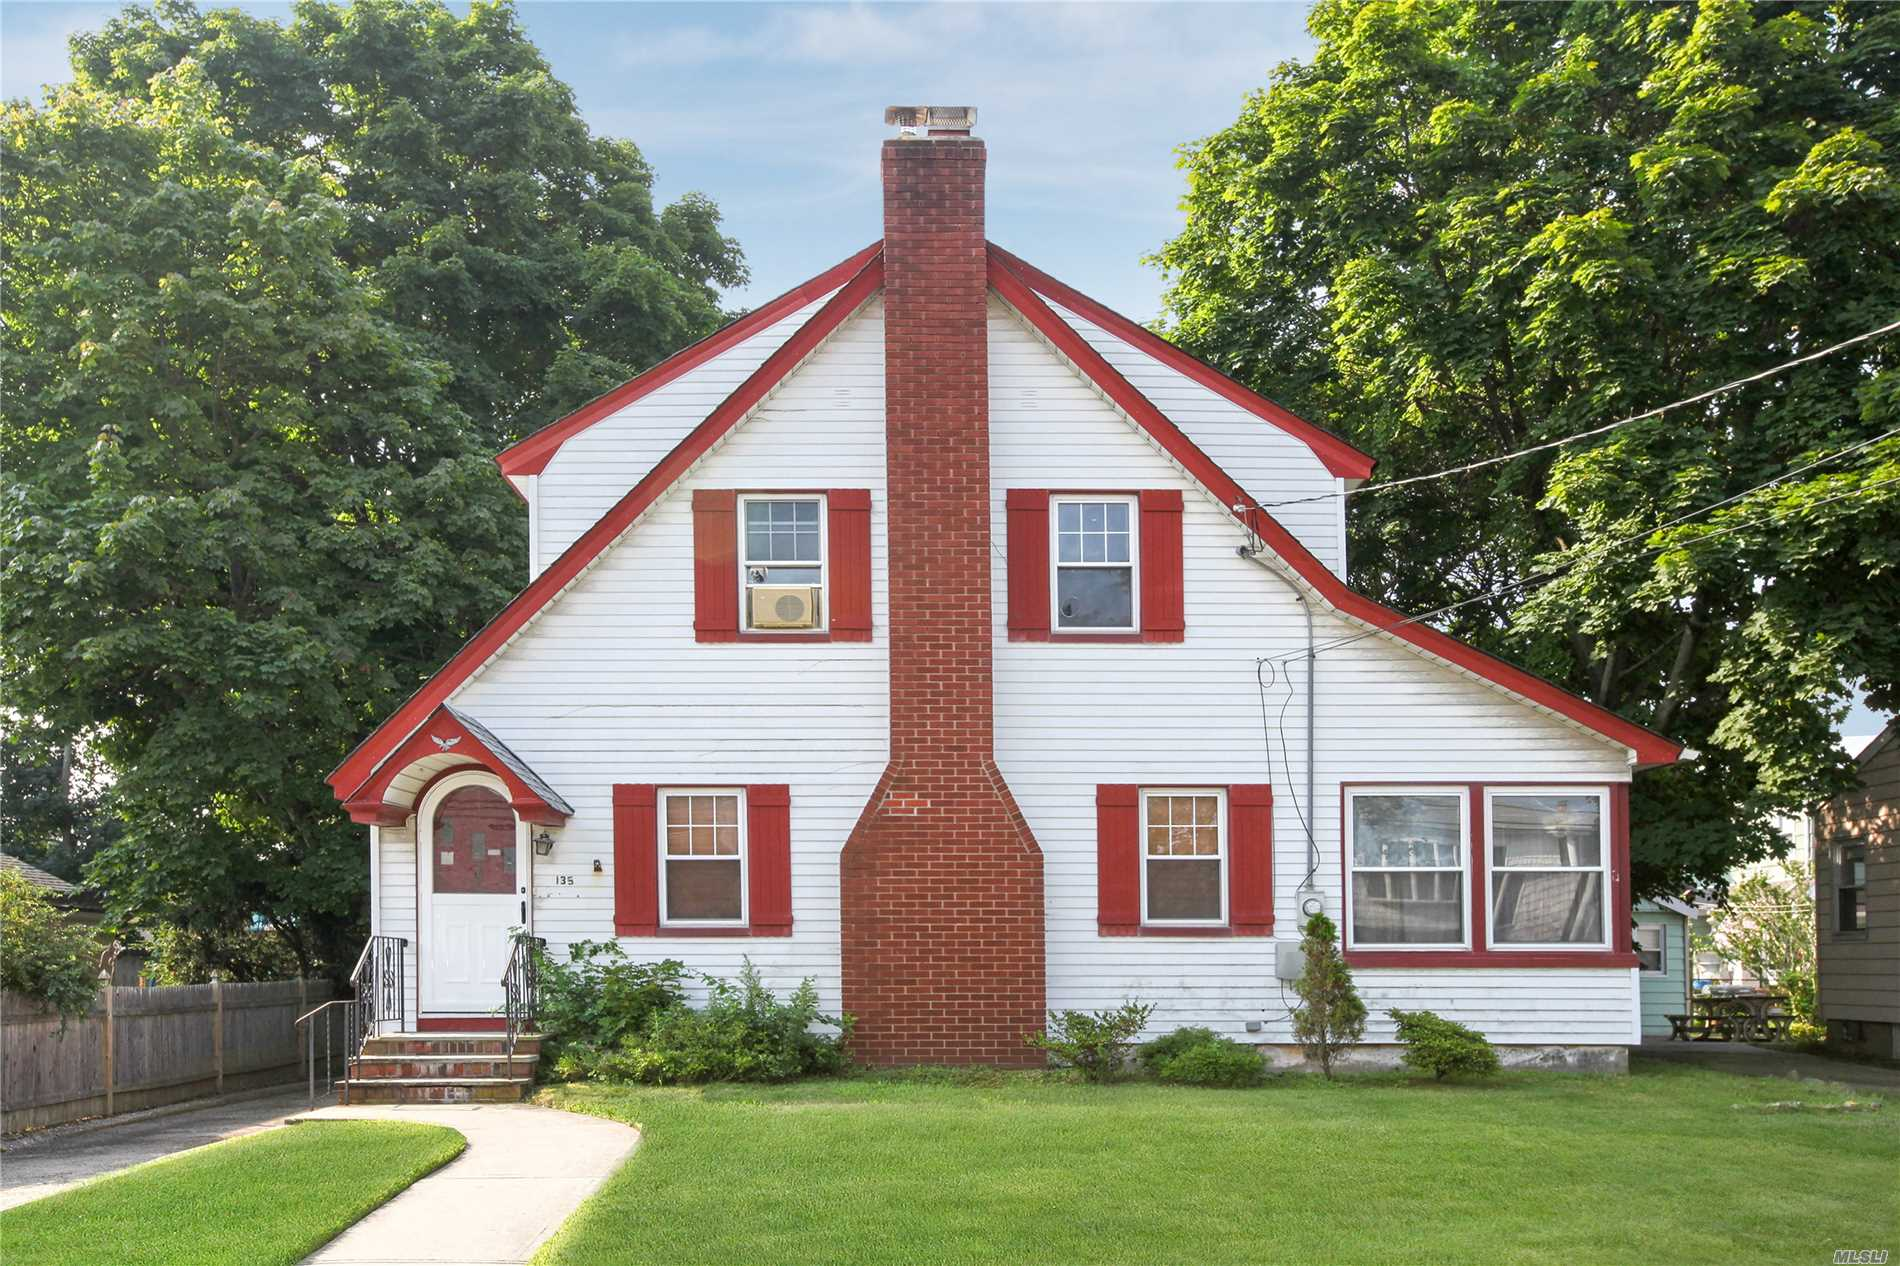 Location Location Location One Of A Kind Colonial In The Heart Of Merrick. Close To Railroad And Shopping. Large Yard. Newer Roof. Beautiful Wood Floors. House Sold As Is Great Opportunity Chatterton/Mams/Calhoun